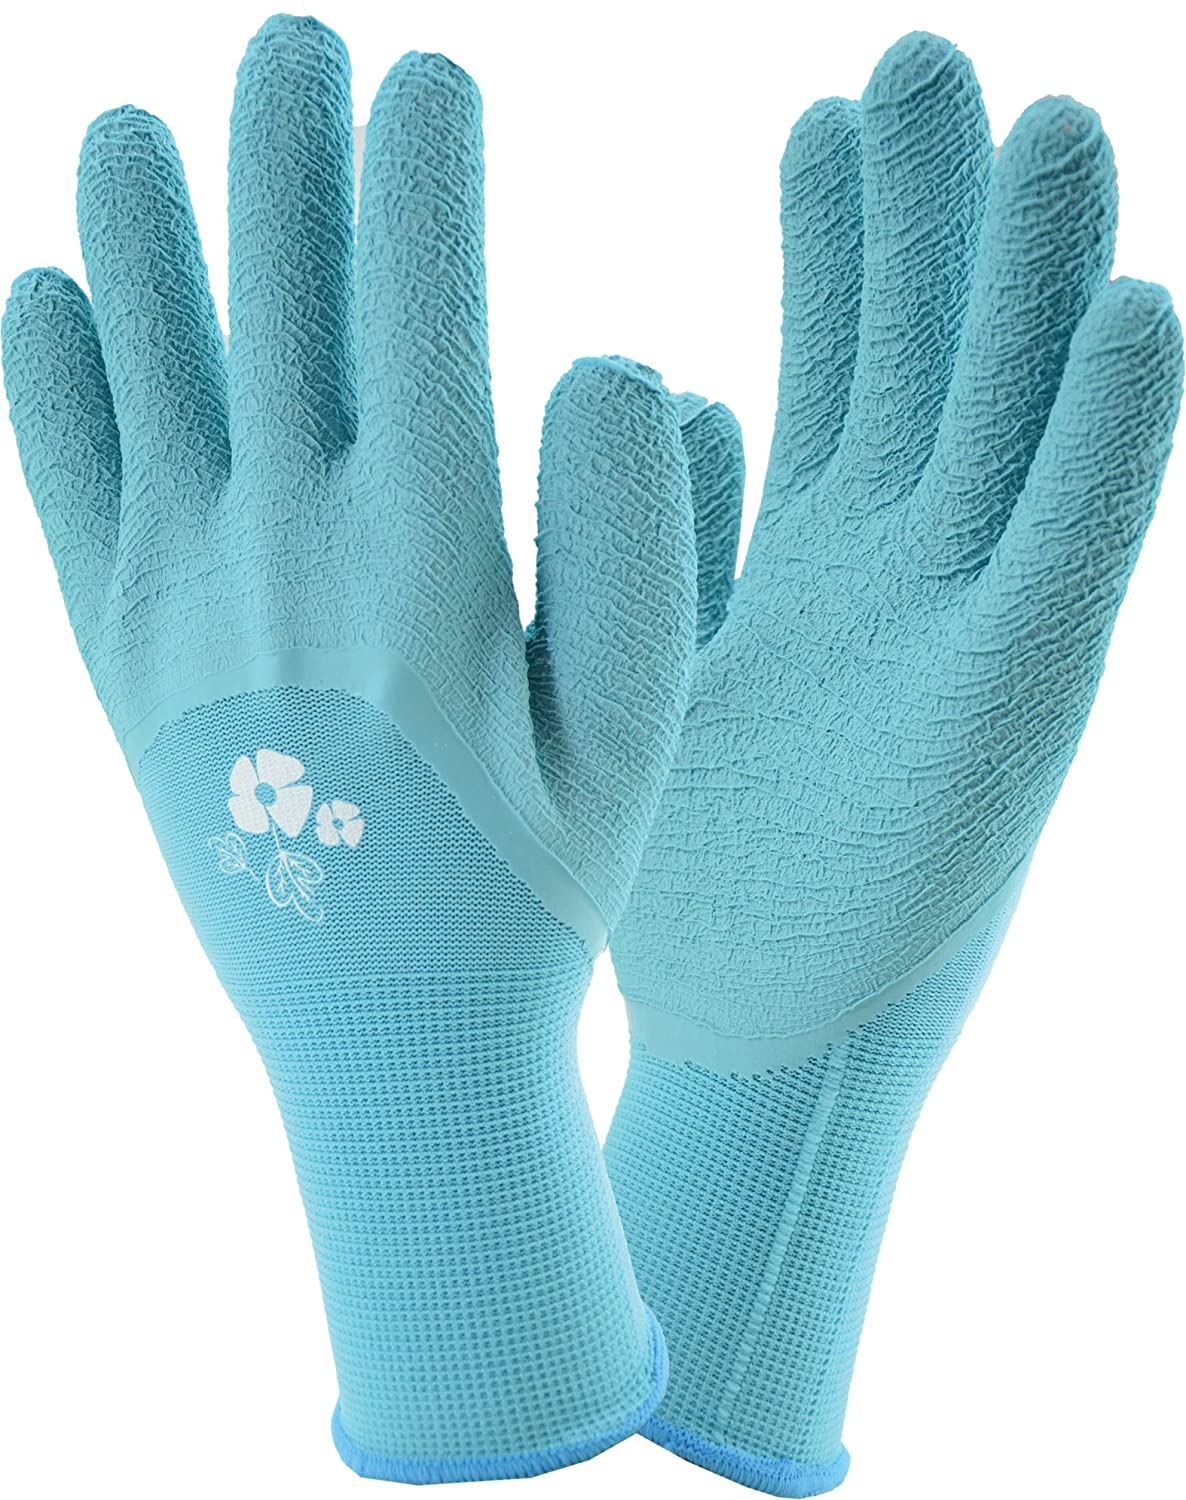 West Chester Miracle-Gro MG30851 Stretch Knit Gardening Gloves with Latex Coated Palm: Women's Small/Medium, 1 Pair